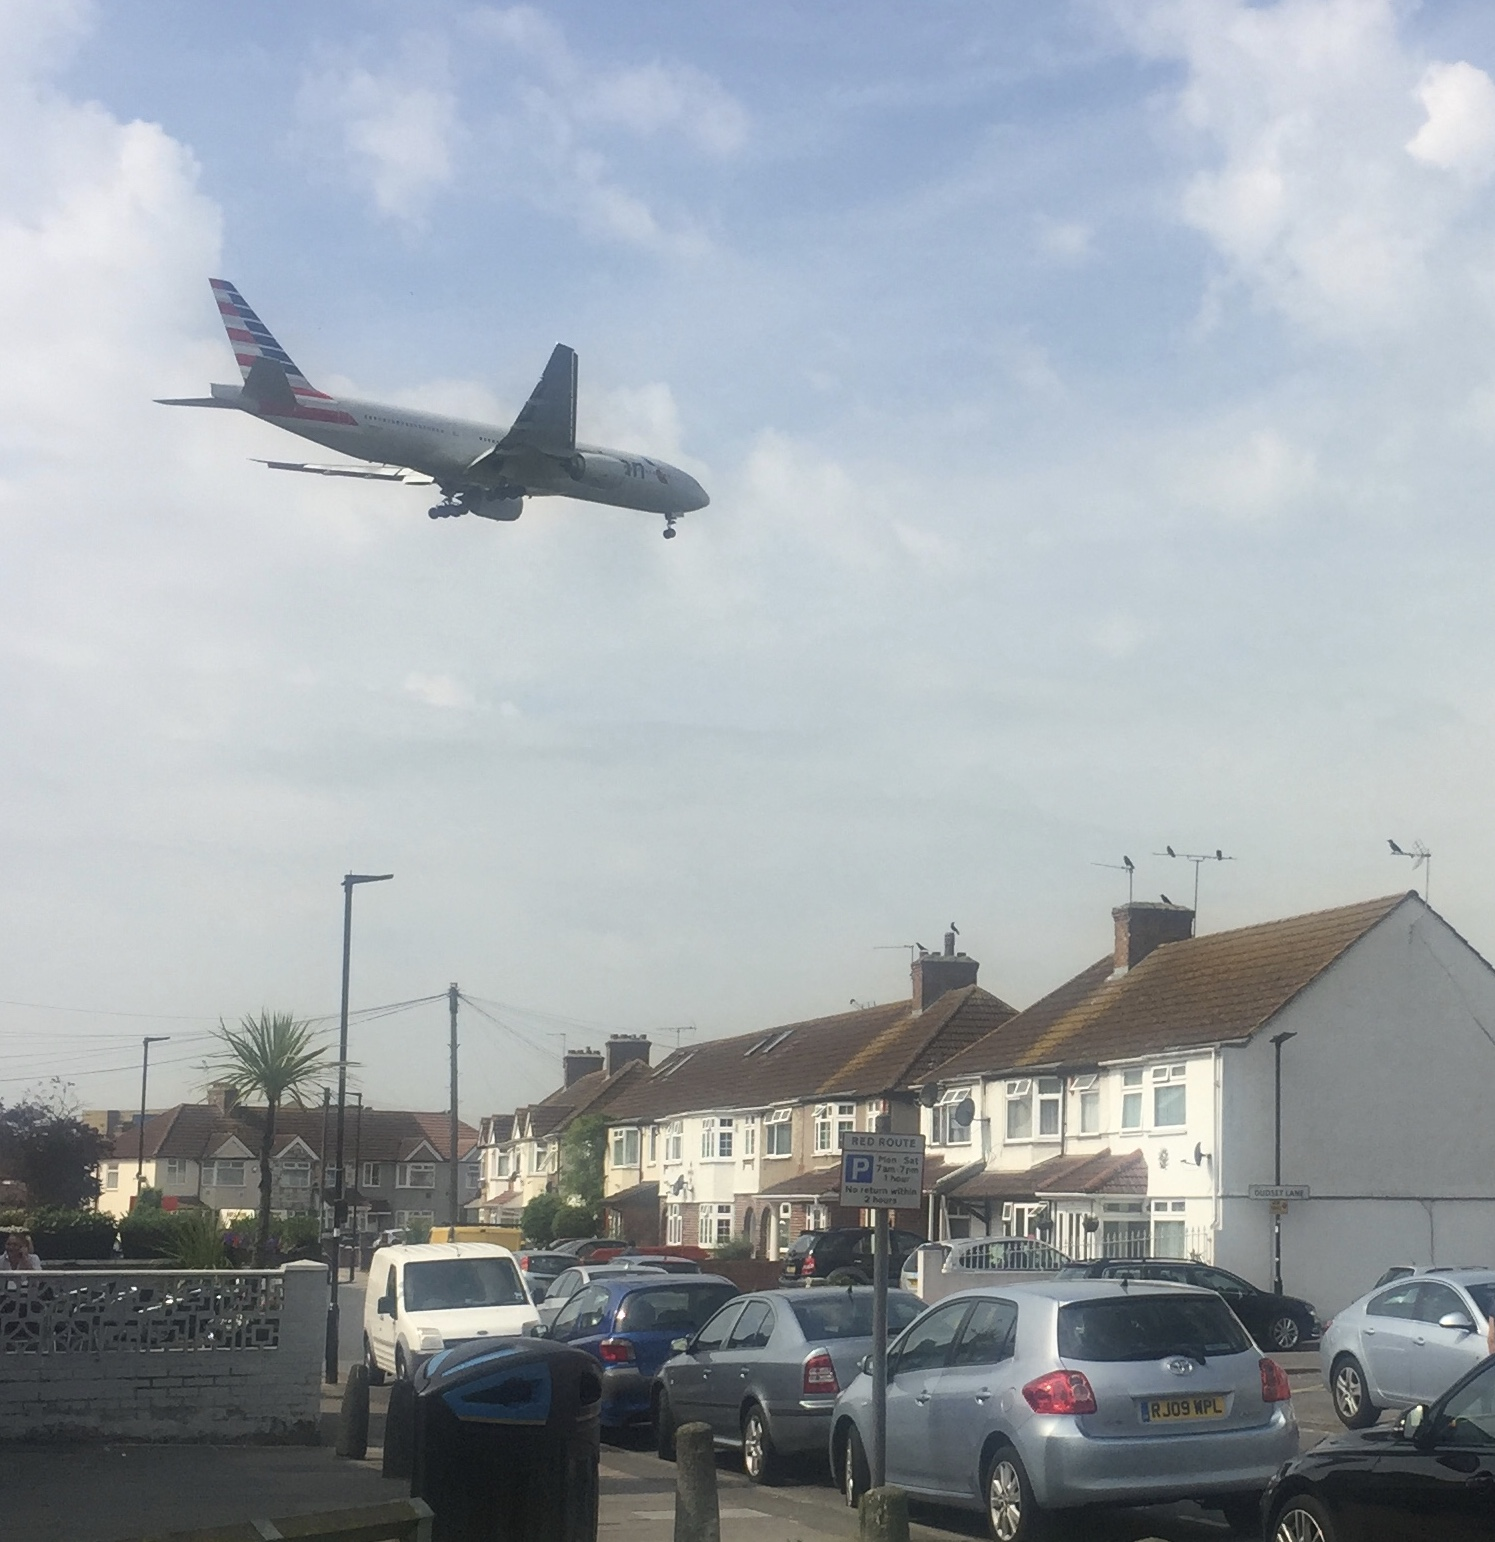 Cranford, in the Borough of Hounslow,under a relentless stream of aircraft preparing to land